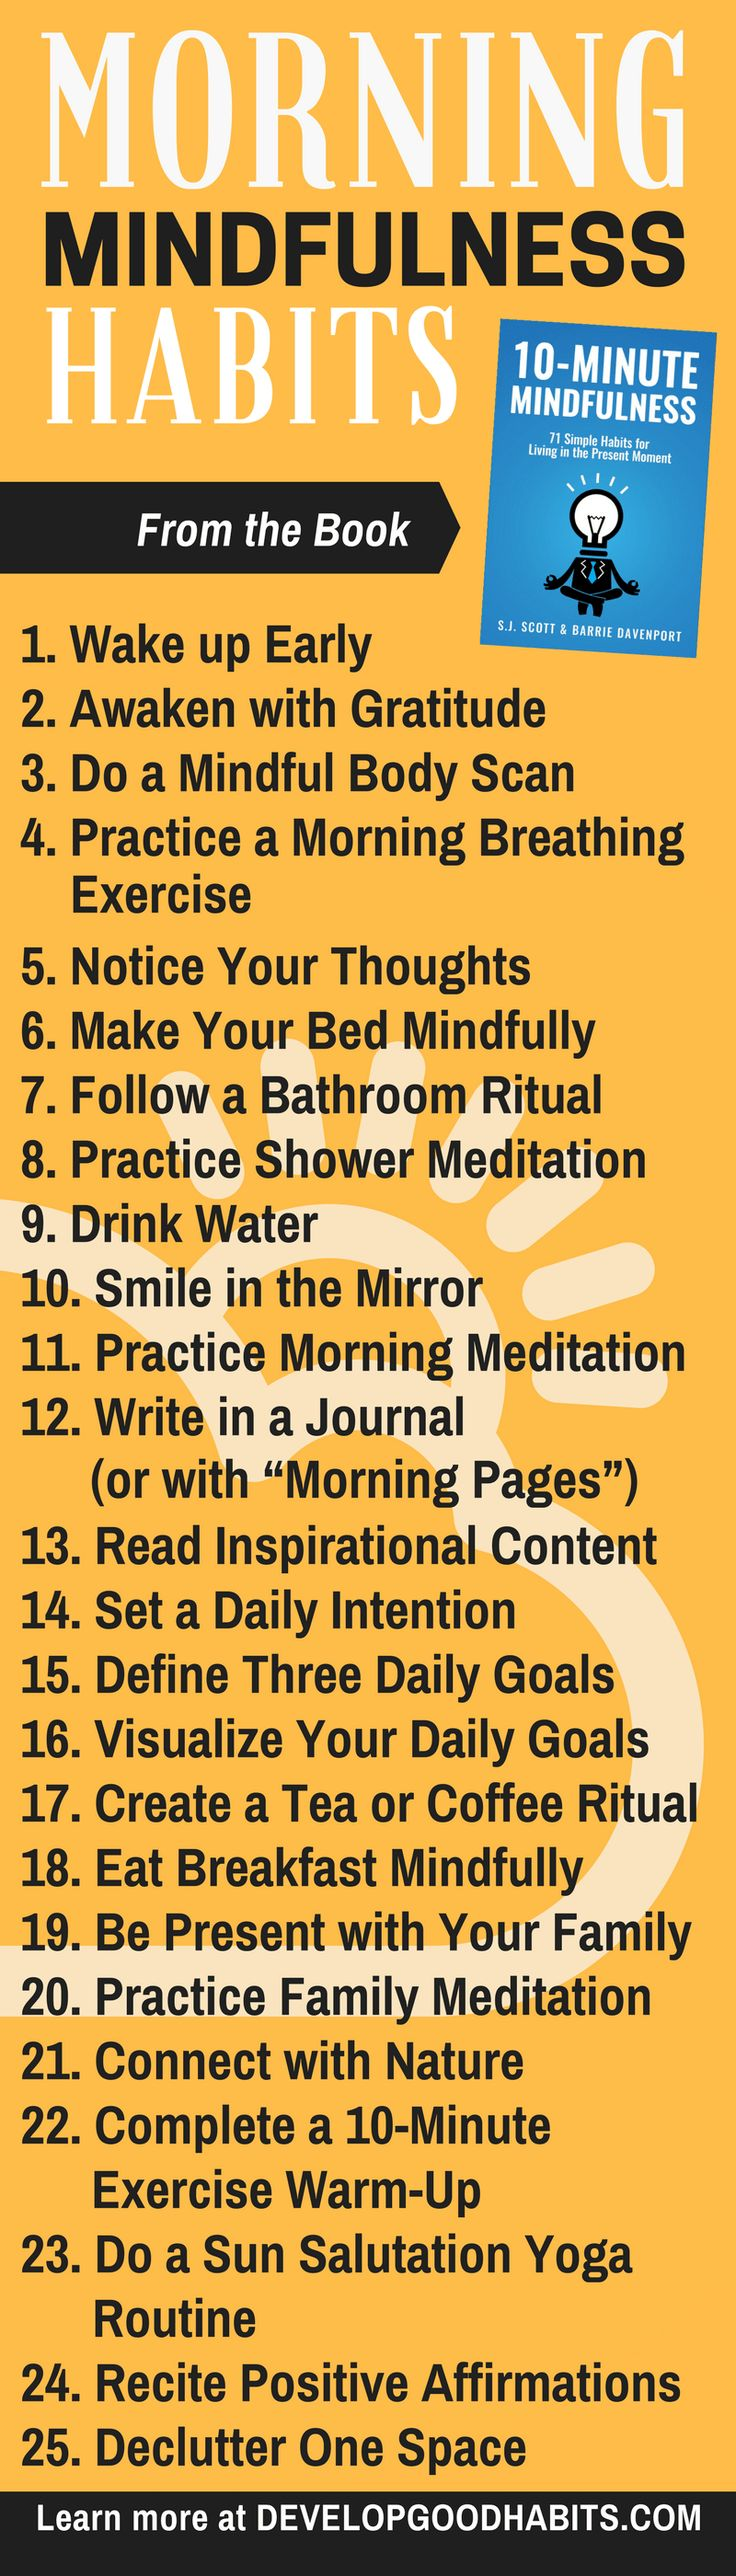 Practicing The Power Of Now Essential Teachings Meditations And Exercises From The Power Of Now